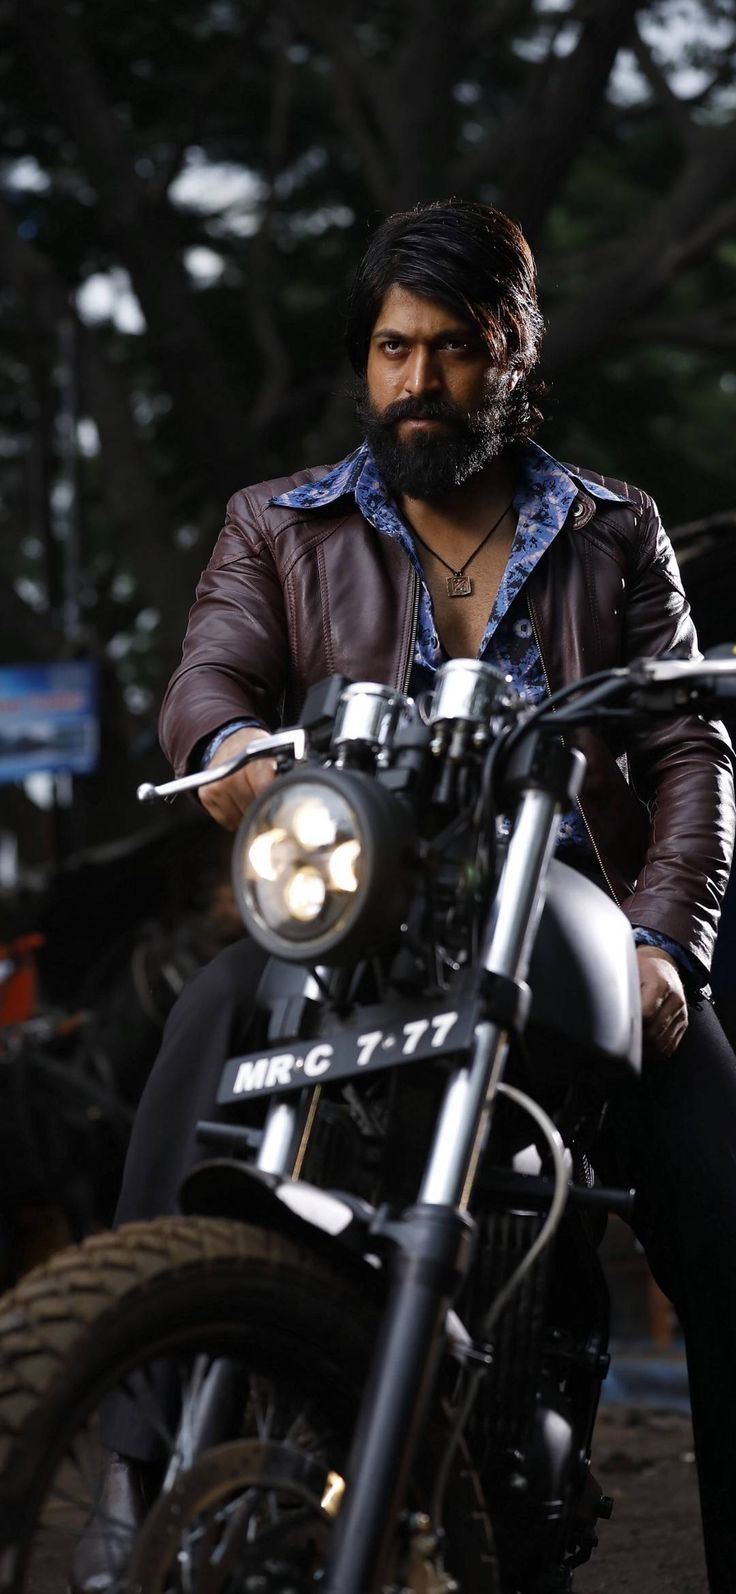 Kgf Yash Hd Wallpaper Click Here To Download Kgf Yash Hd